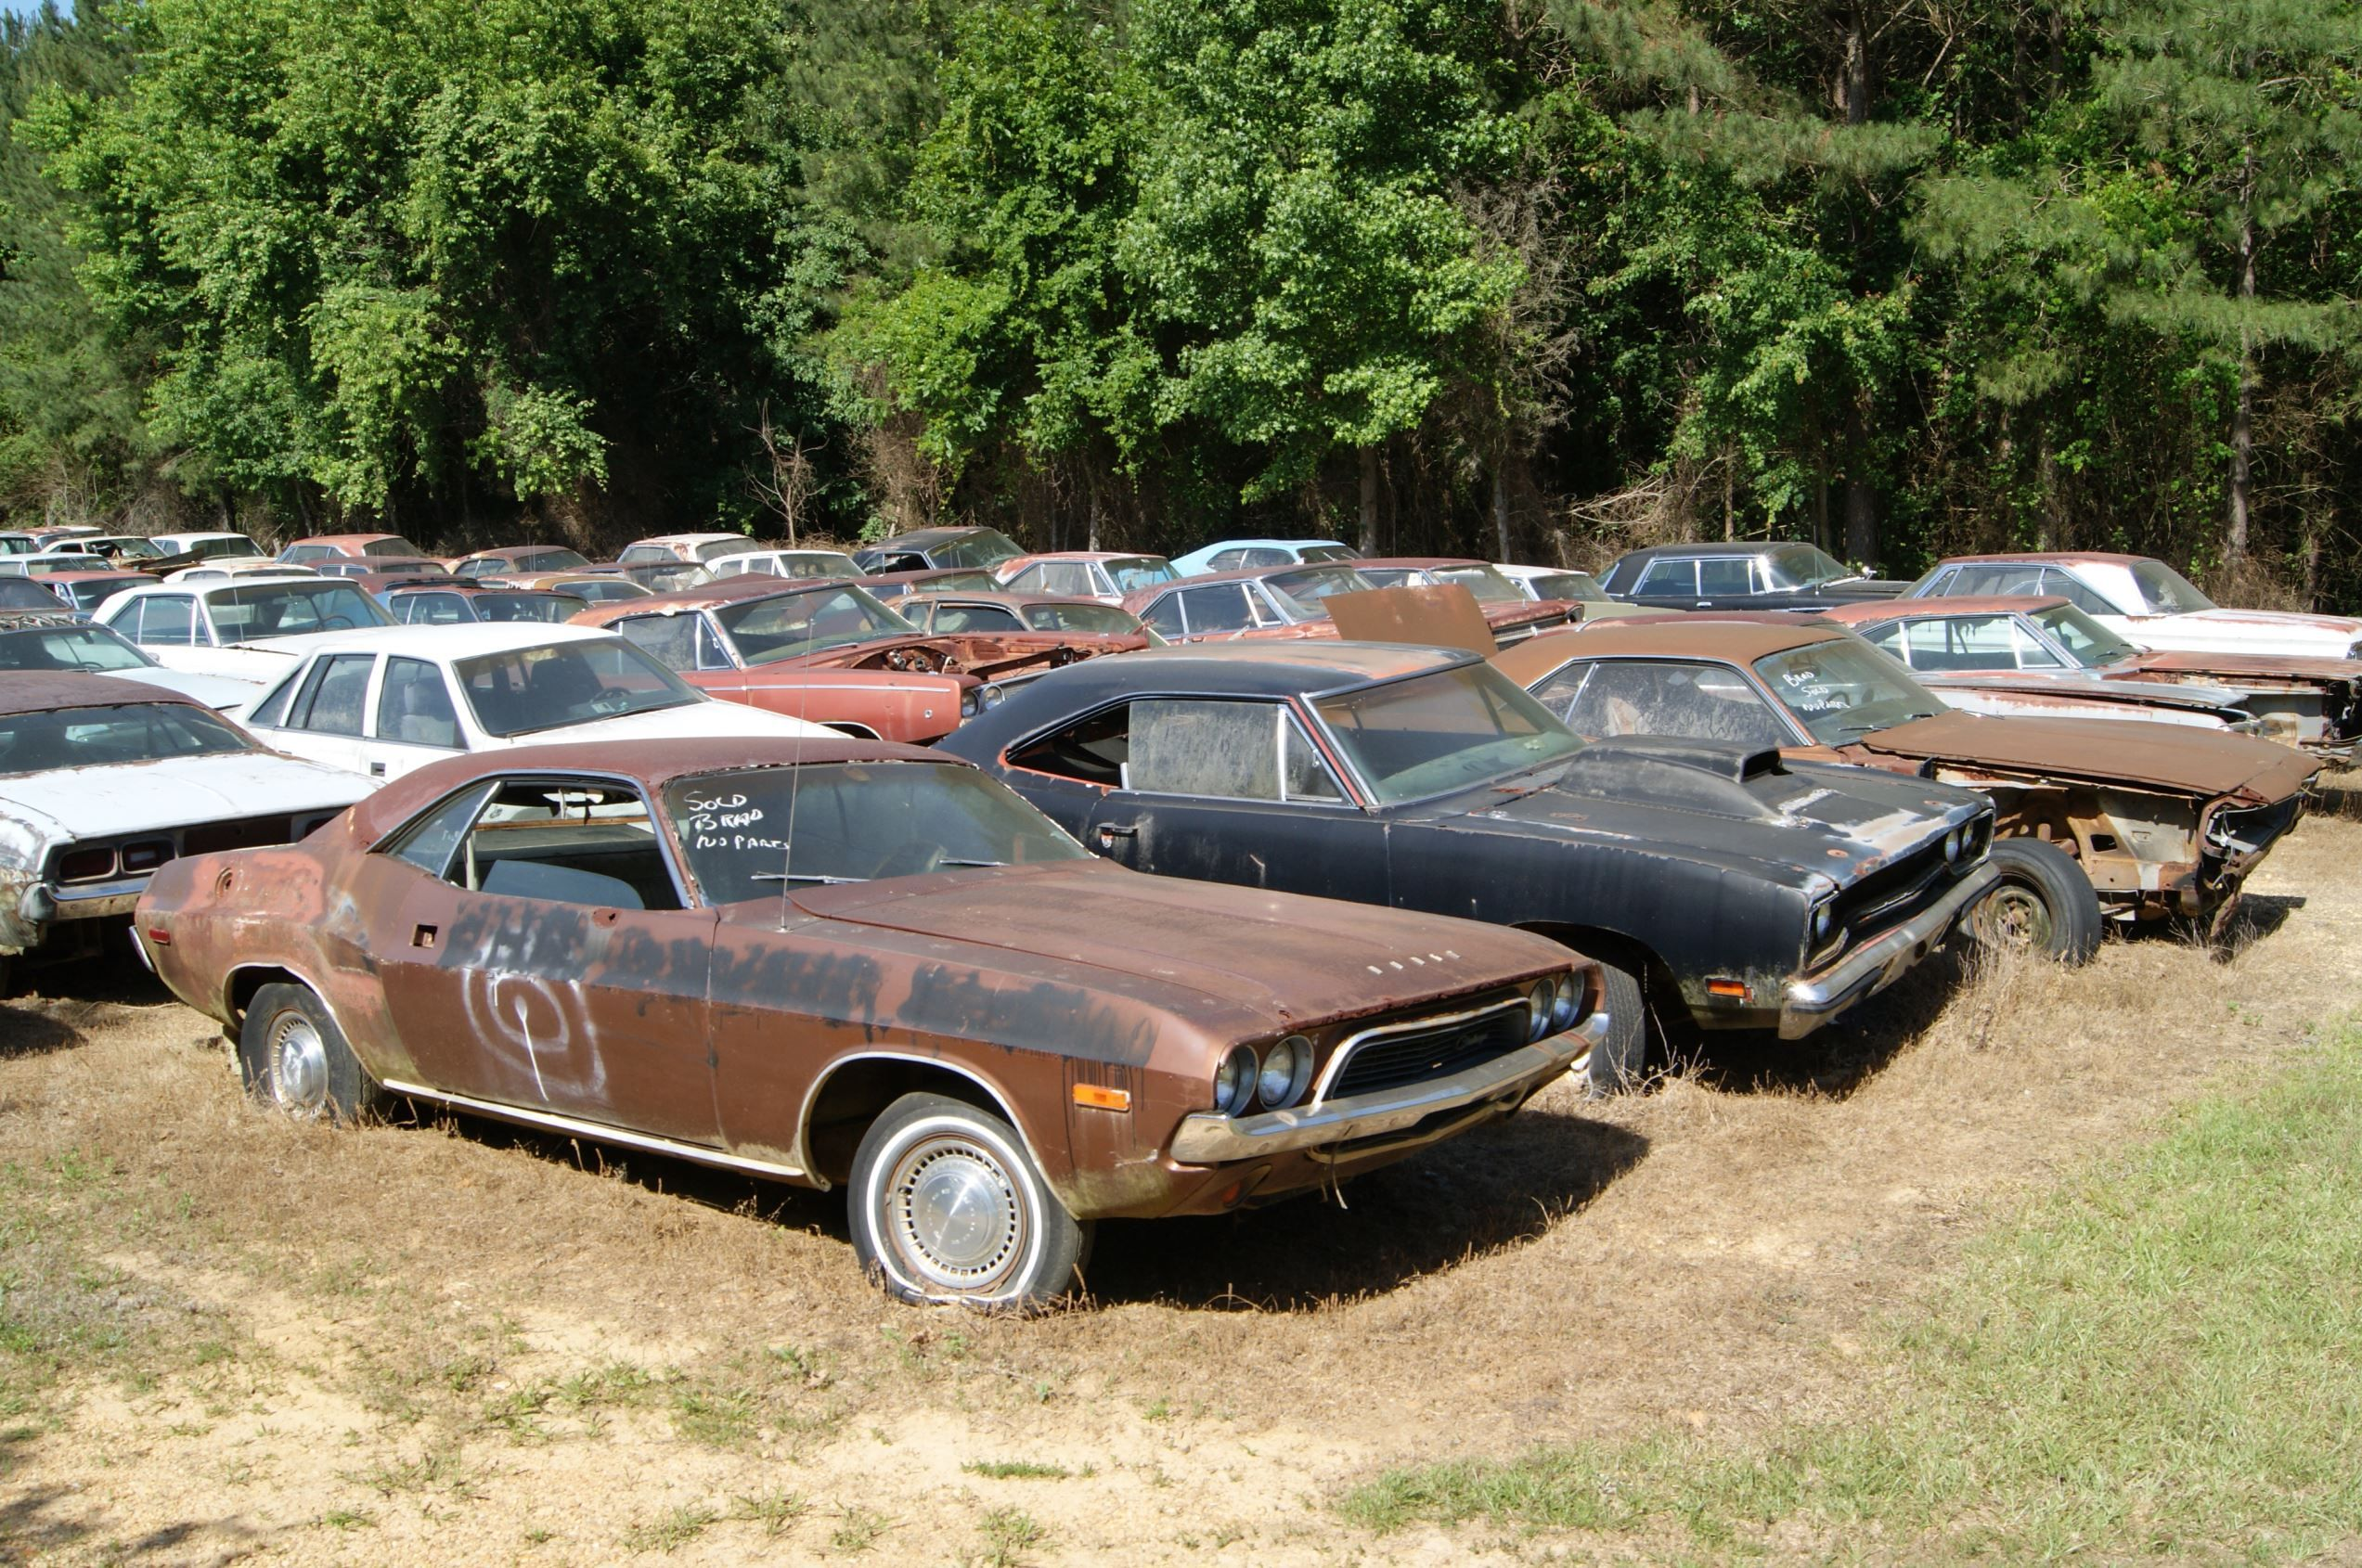 Junk Yards Muscle Car Graveyards